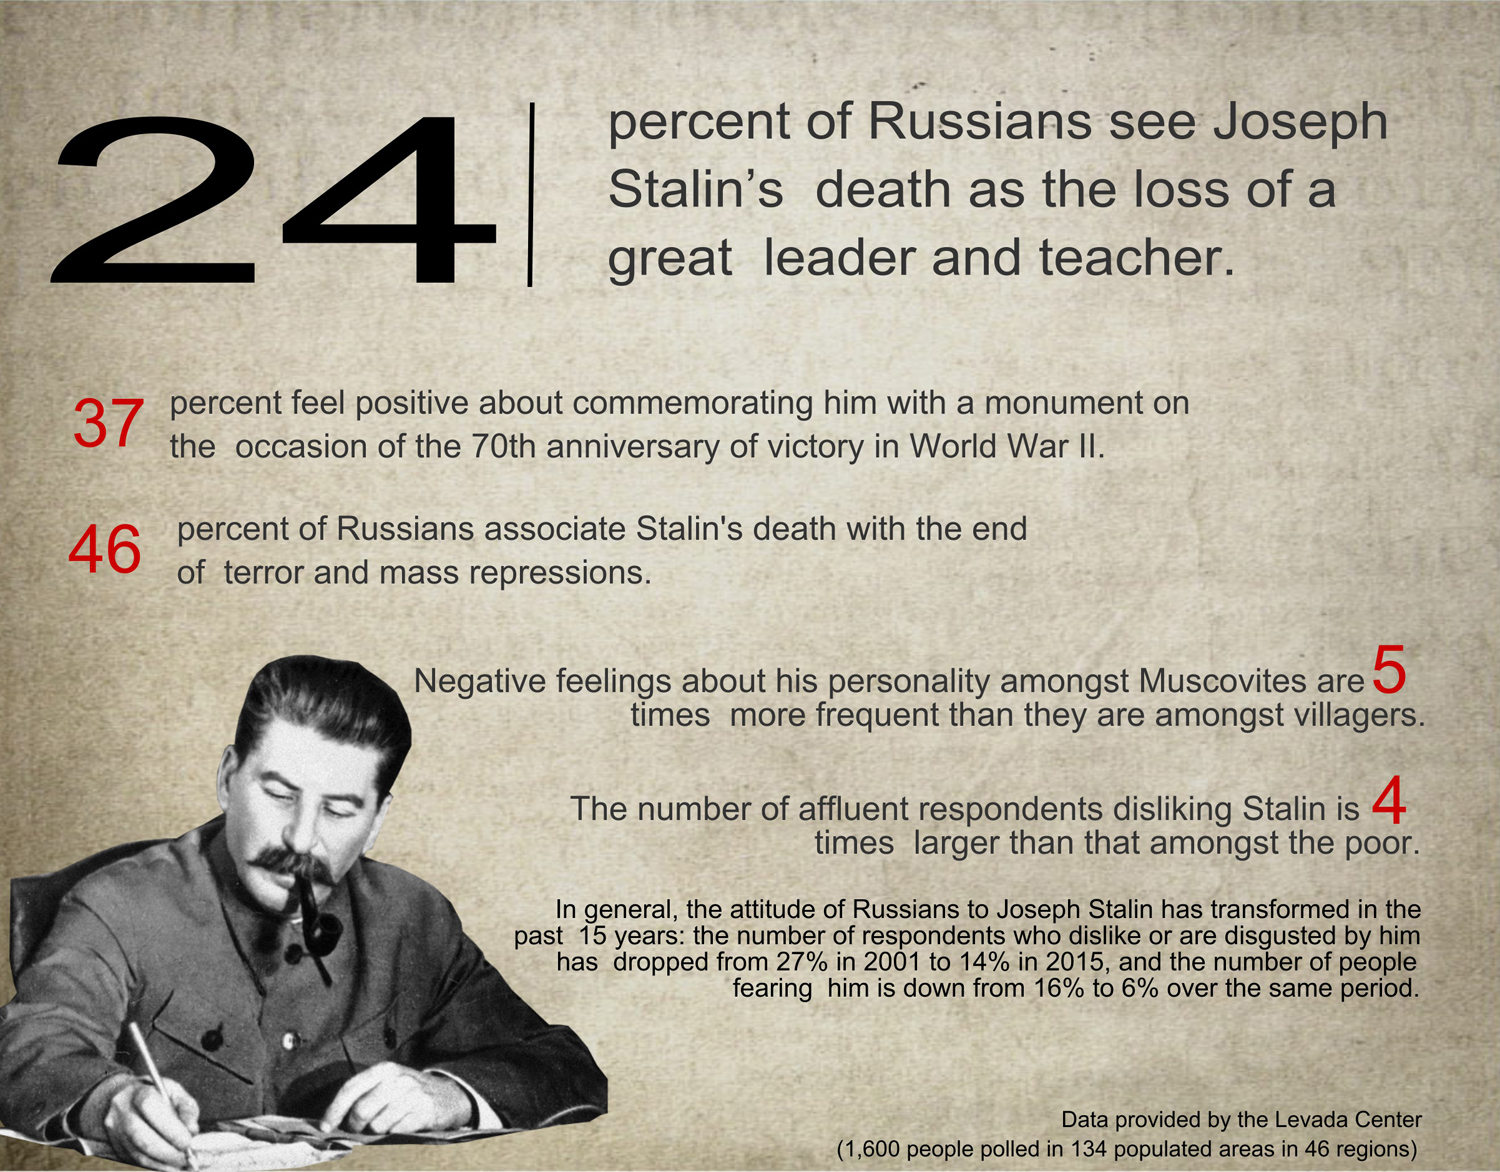 New poll shows each forth Russian sees Stalin's death as the great loss.